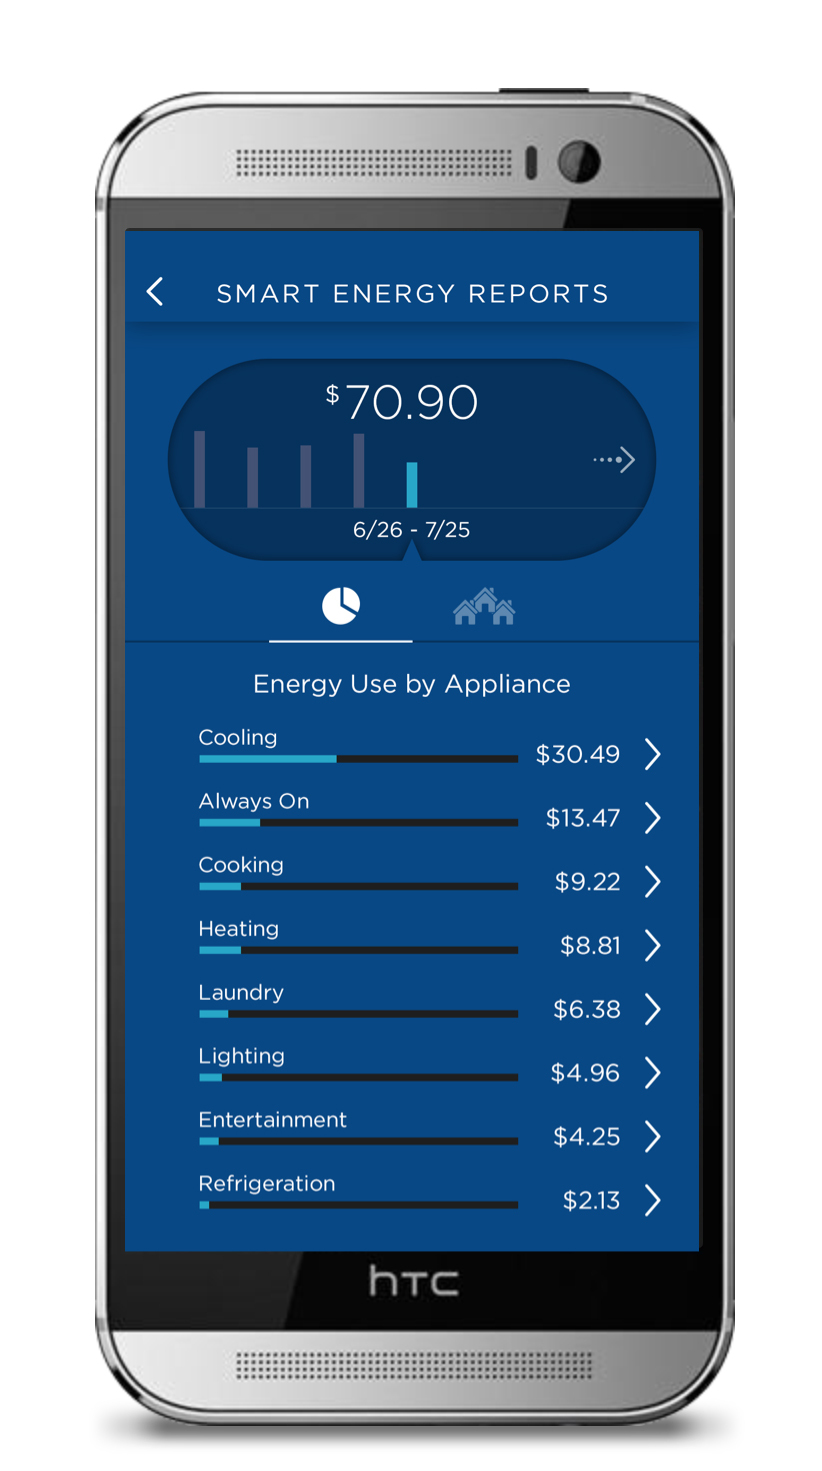 Bidgely continues to advance its award-winning HomeBeat platform with the launch of a new comprehensive full-bill disaggregation solution, which provides total home energy itemization for utility customers. For the first time, customers receive fully itemized breakdowns of both their electricity and gas usage in one bill, thereby creating greater insights for customers and new engagement opportunities for utilities. (Photo: Business Wire)